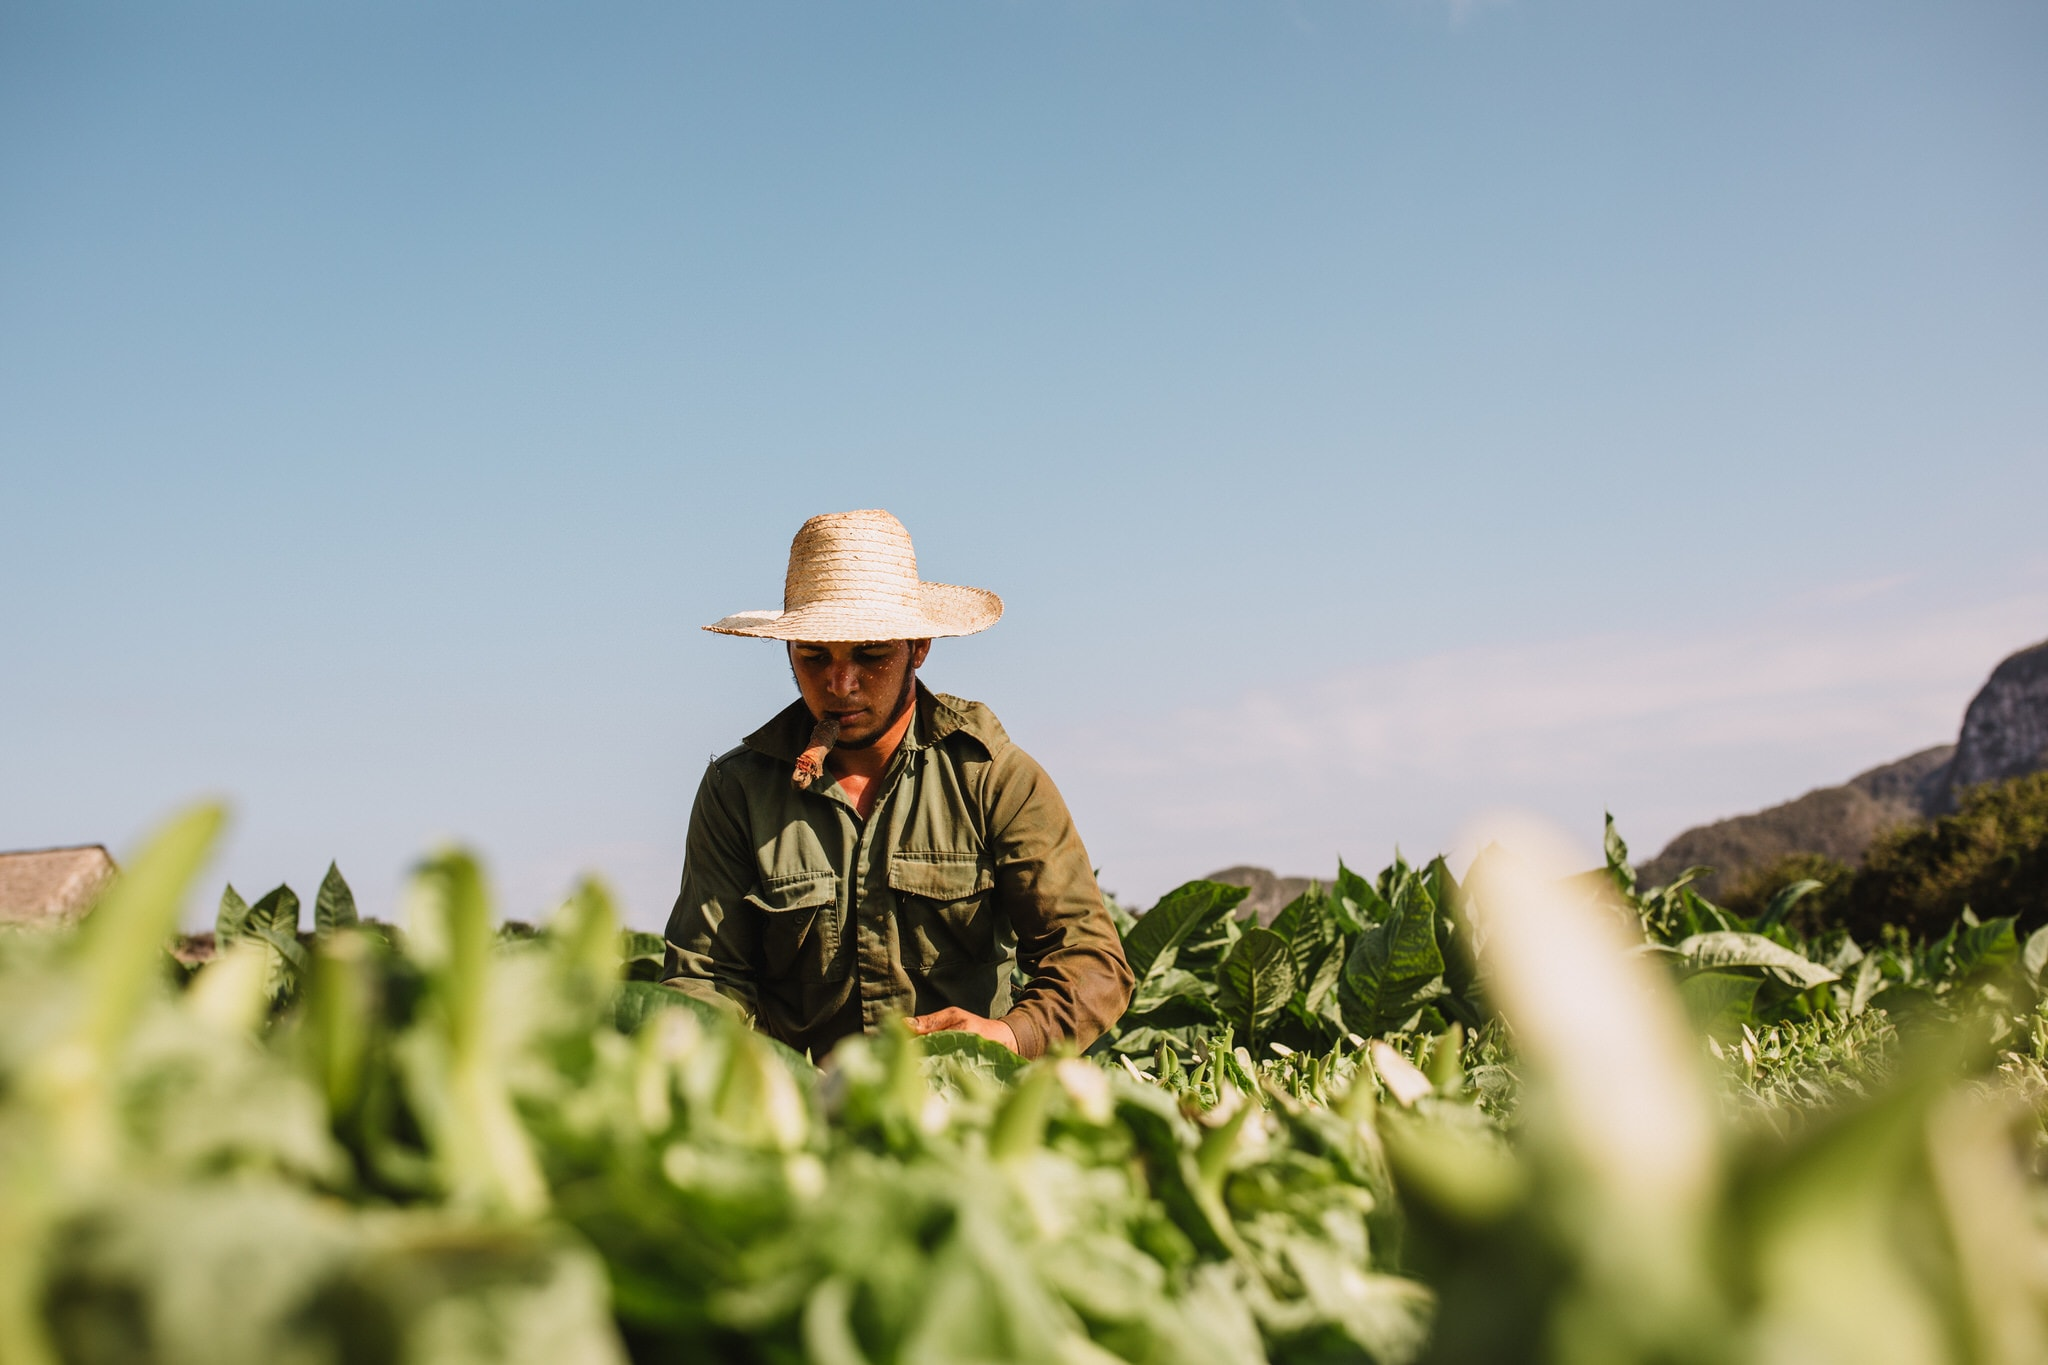 A tobacco farmer inspects crops on cigar farm in Vinales, Cuba. Wedding and travel photographer Brent Calis.